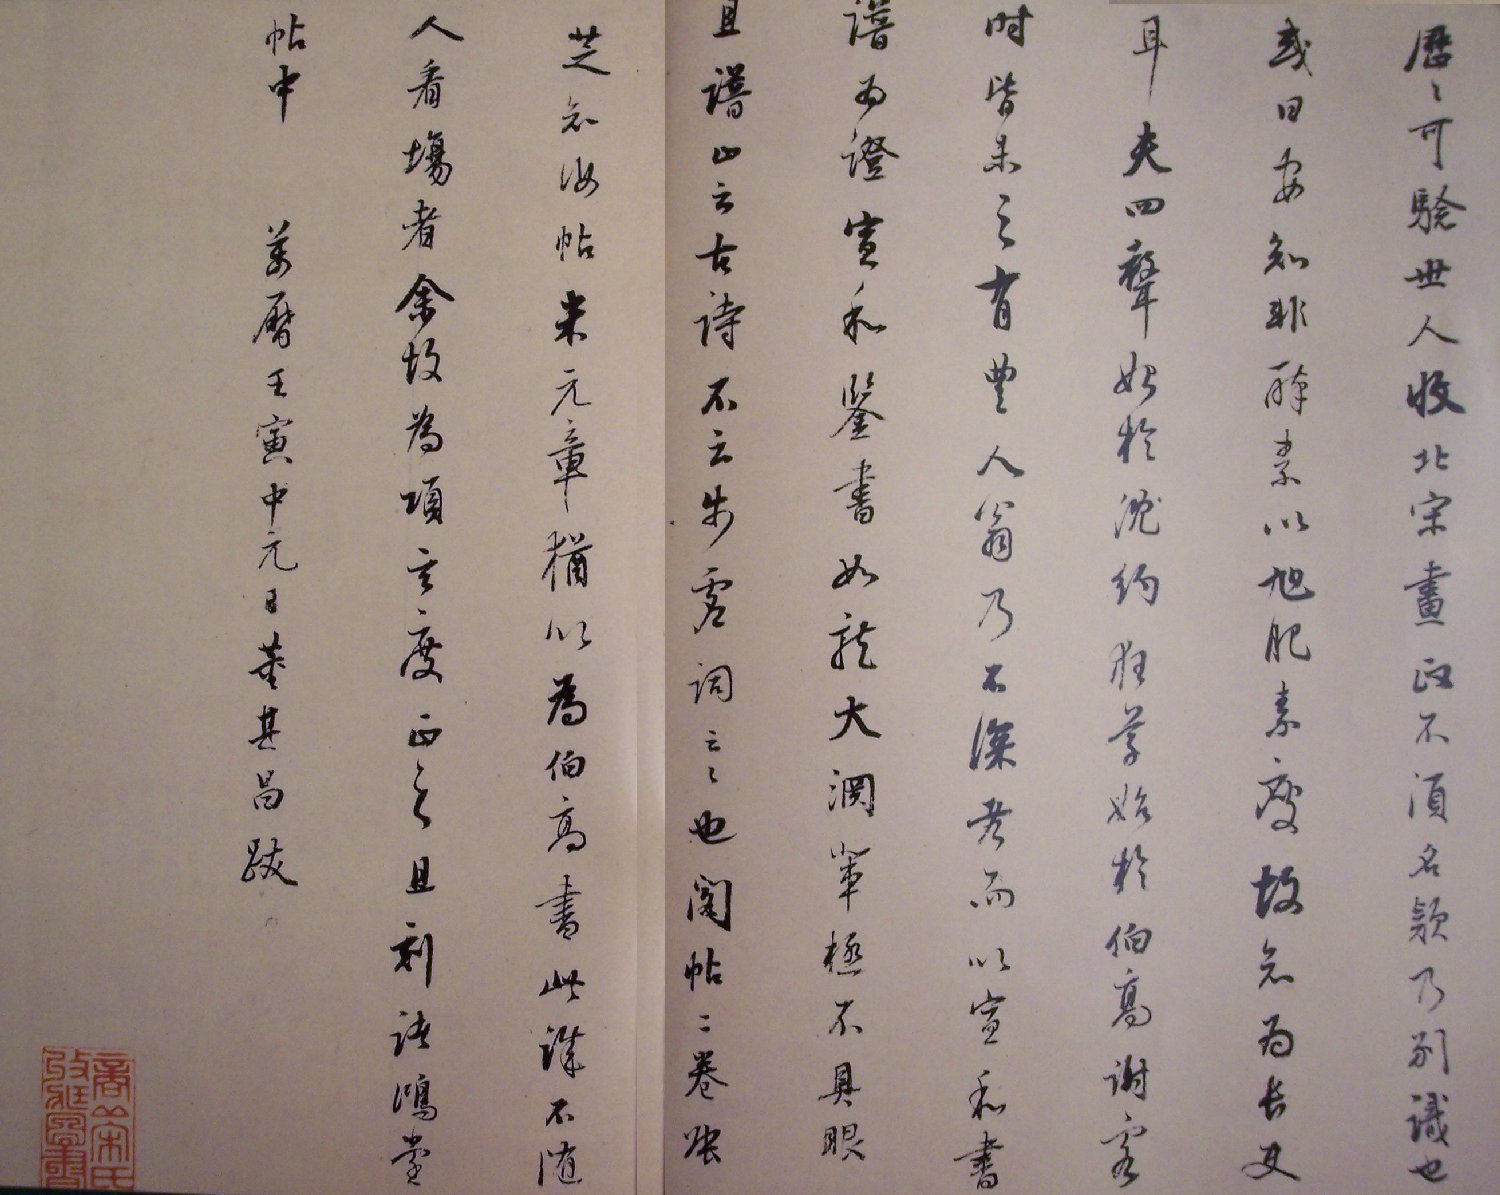 ancient chinese writing history Kt wu 吳光清, 'the chinese book: its evolution and development', t'ien hsia monthly, voliii, noi, august 1936, pp25-33 after the period of oracle bones and shells, the use of bamboo and wood, which provided a more liberal space for writing, came into vogue the exact origin of the use of.